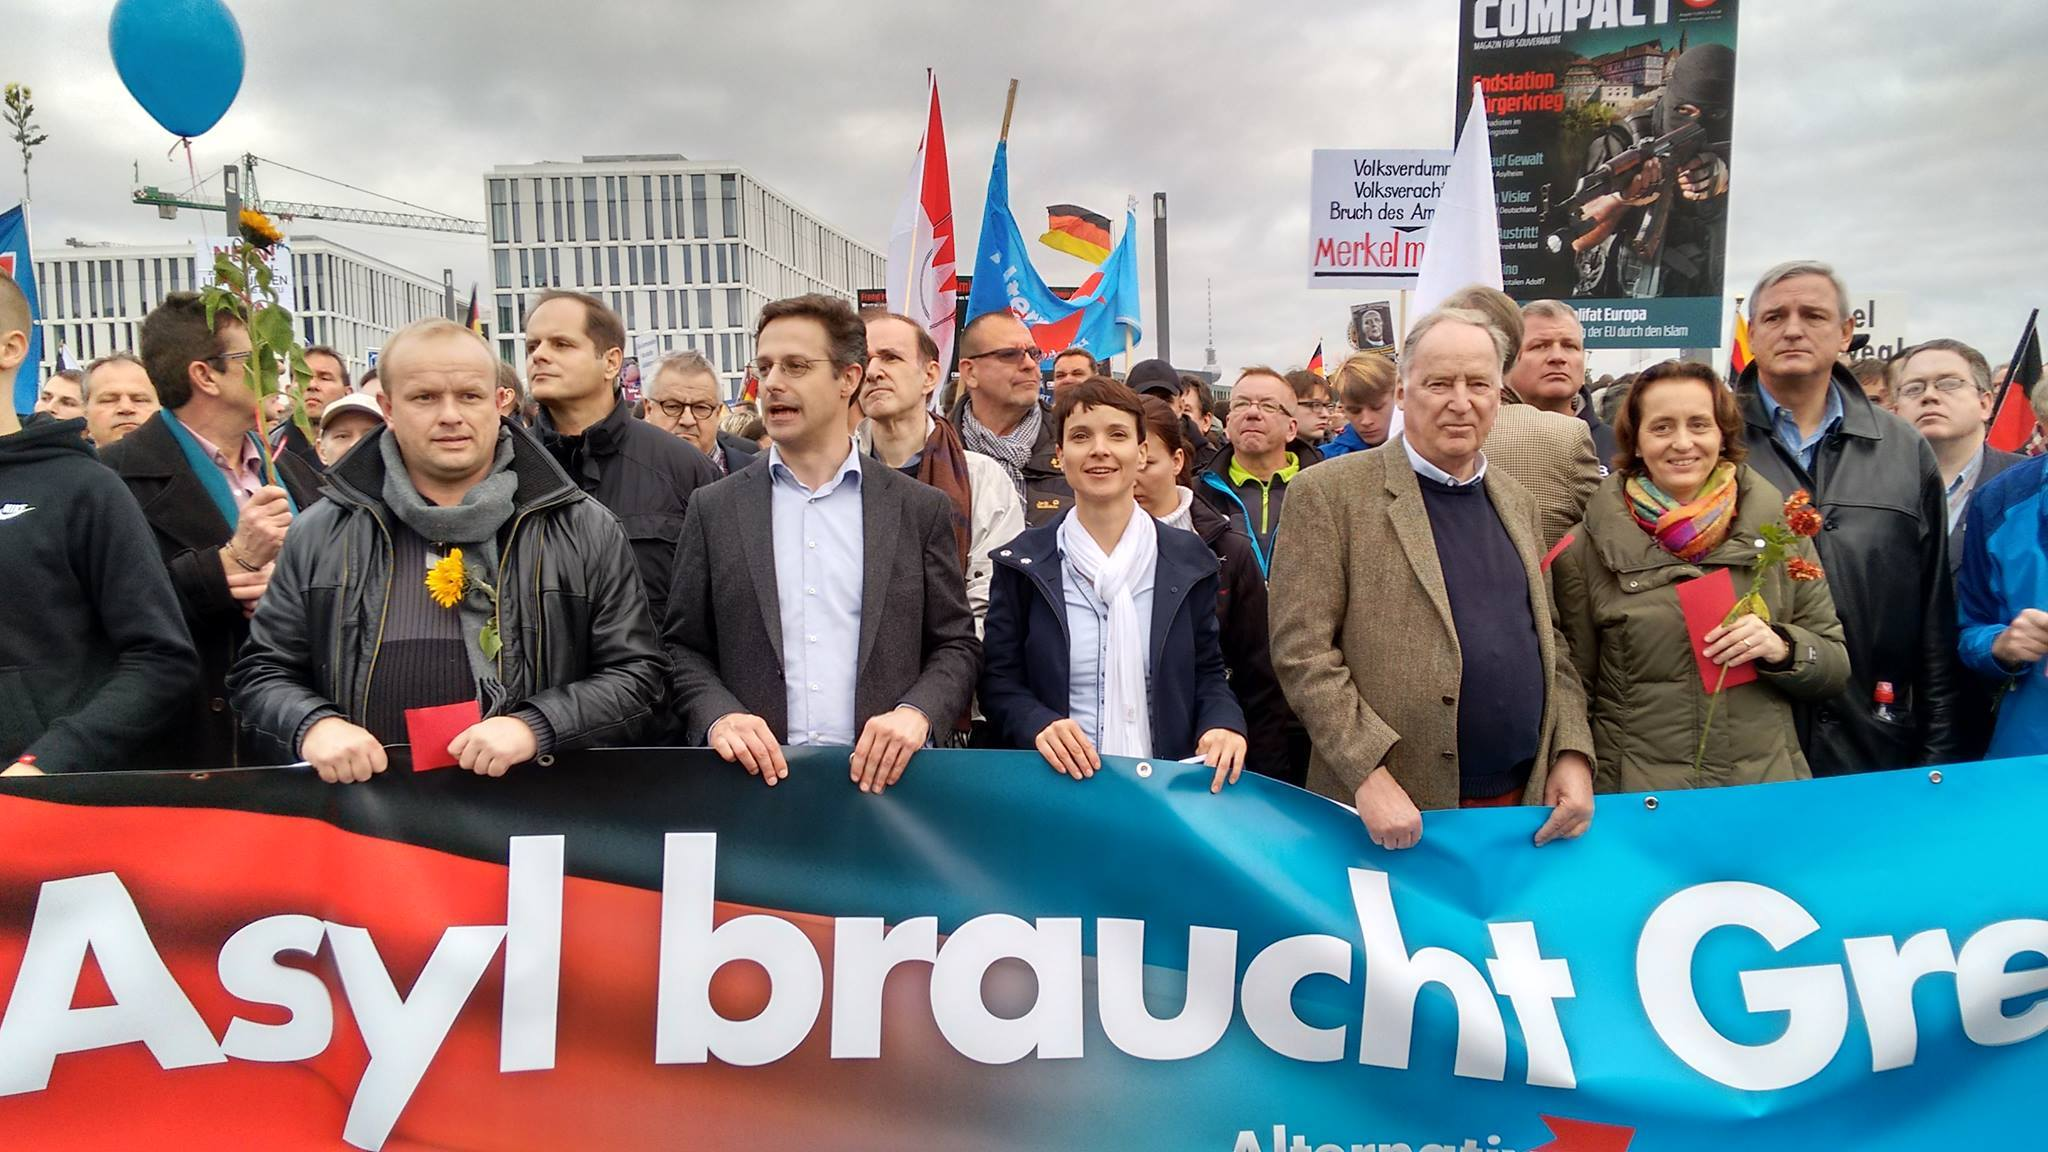 The German Anti-Immigrant AfD Party Is On The Rise